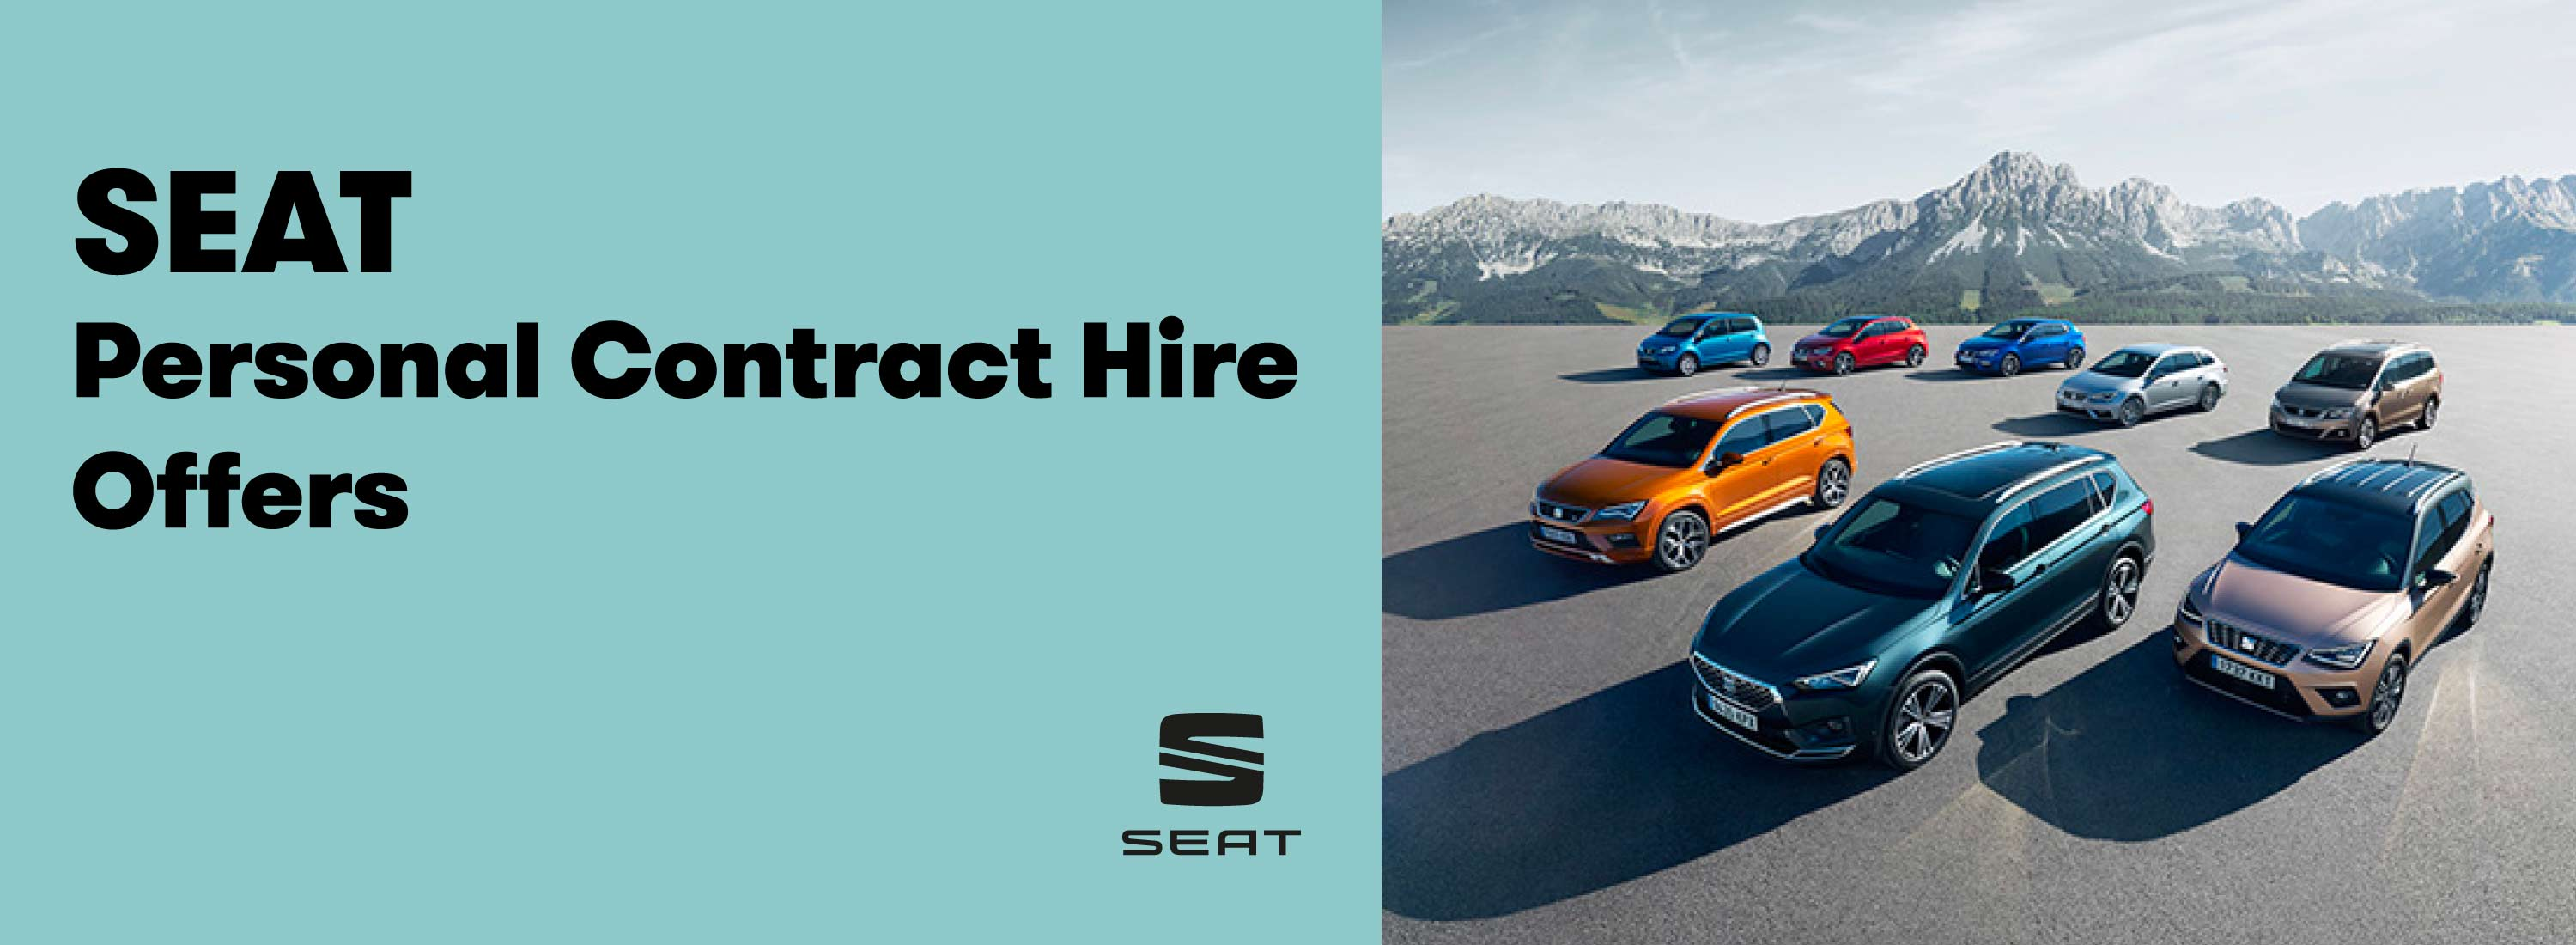 SEAT Personal Contract Hire